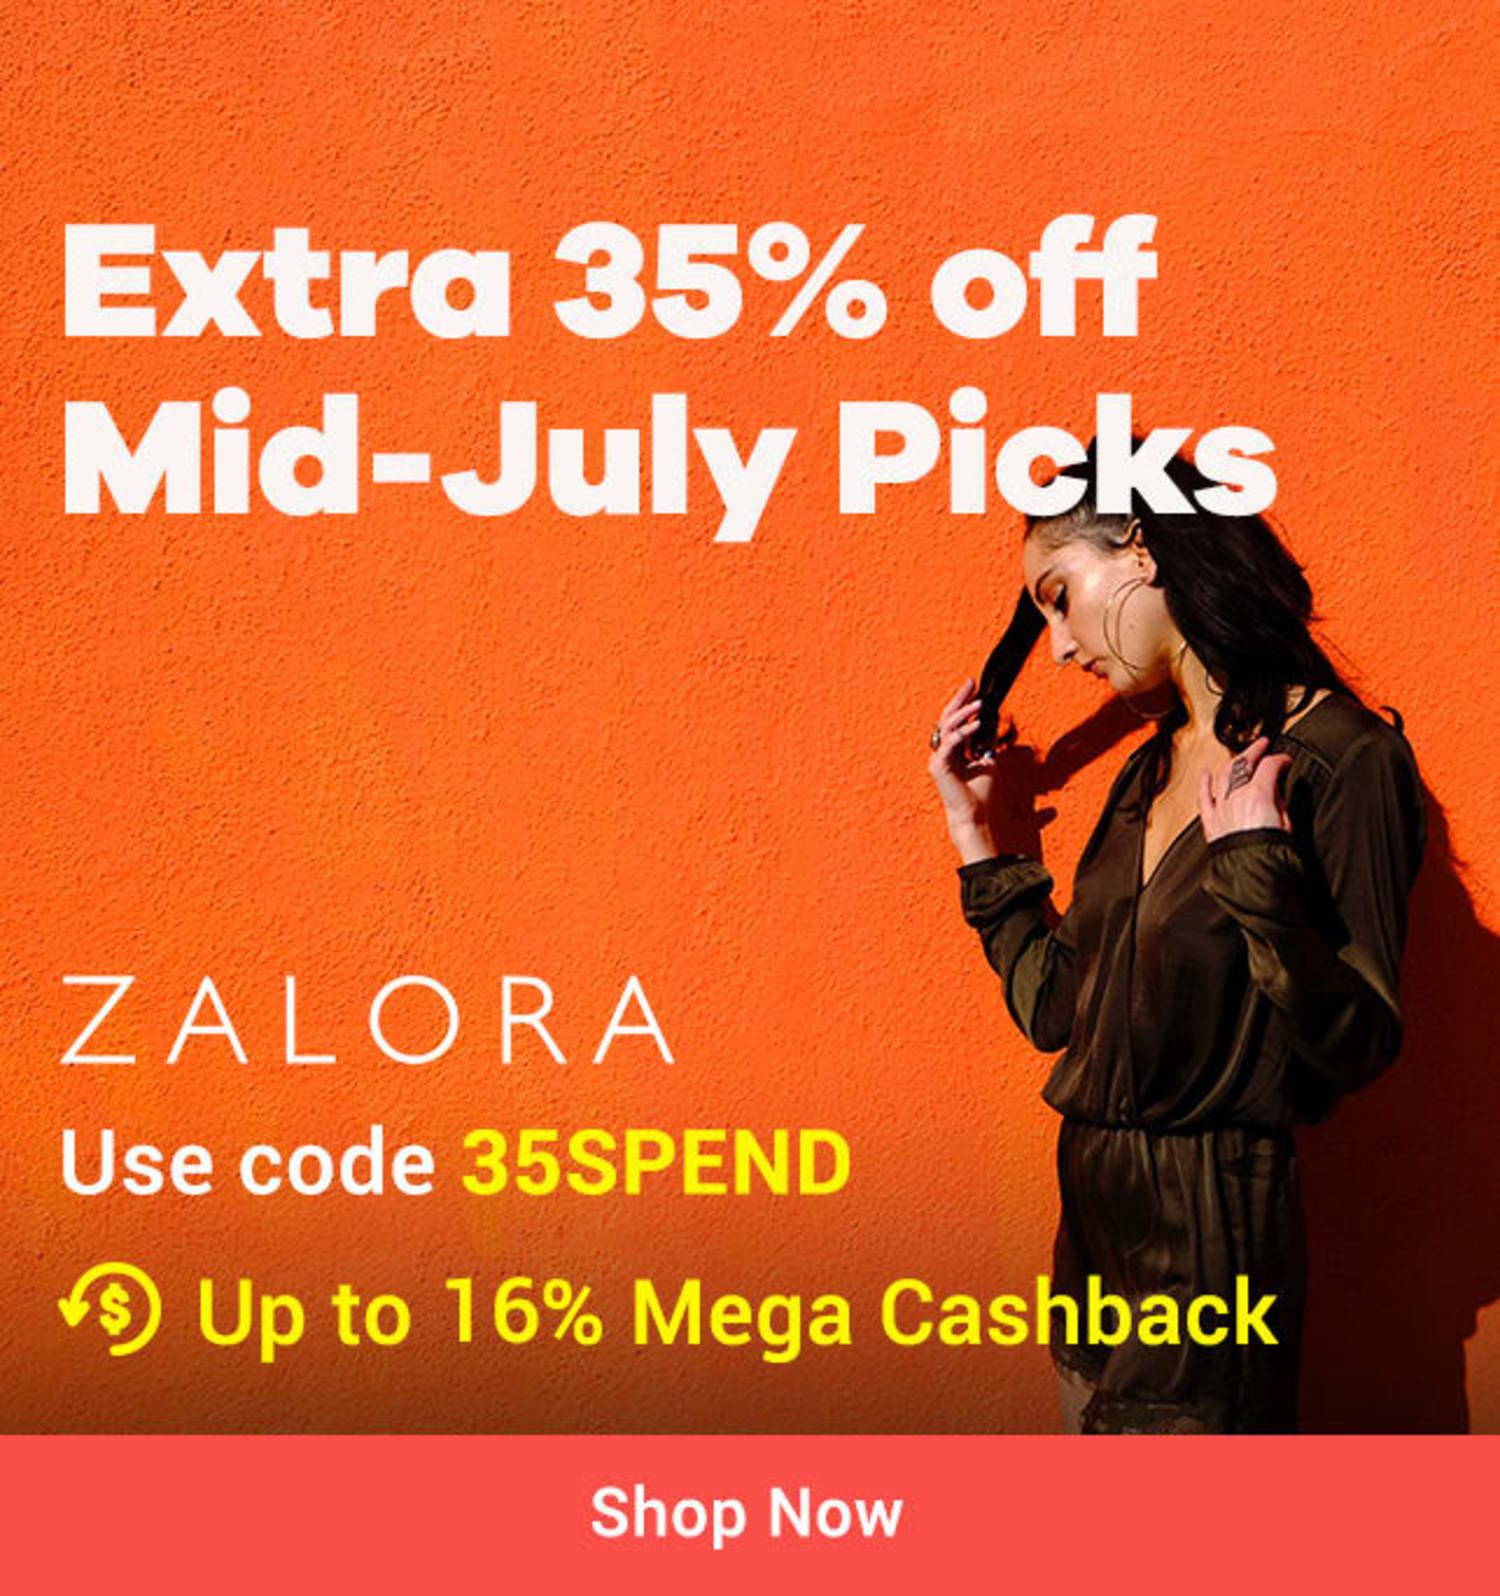 20 ~ 21 Jul ZALORA Extra 35% off Mid-July Picks | Use code 35SPEND + Up to 14% Mega Cashback (<9%)